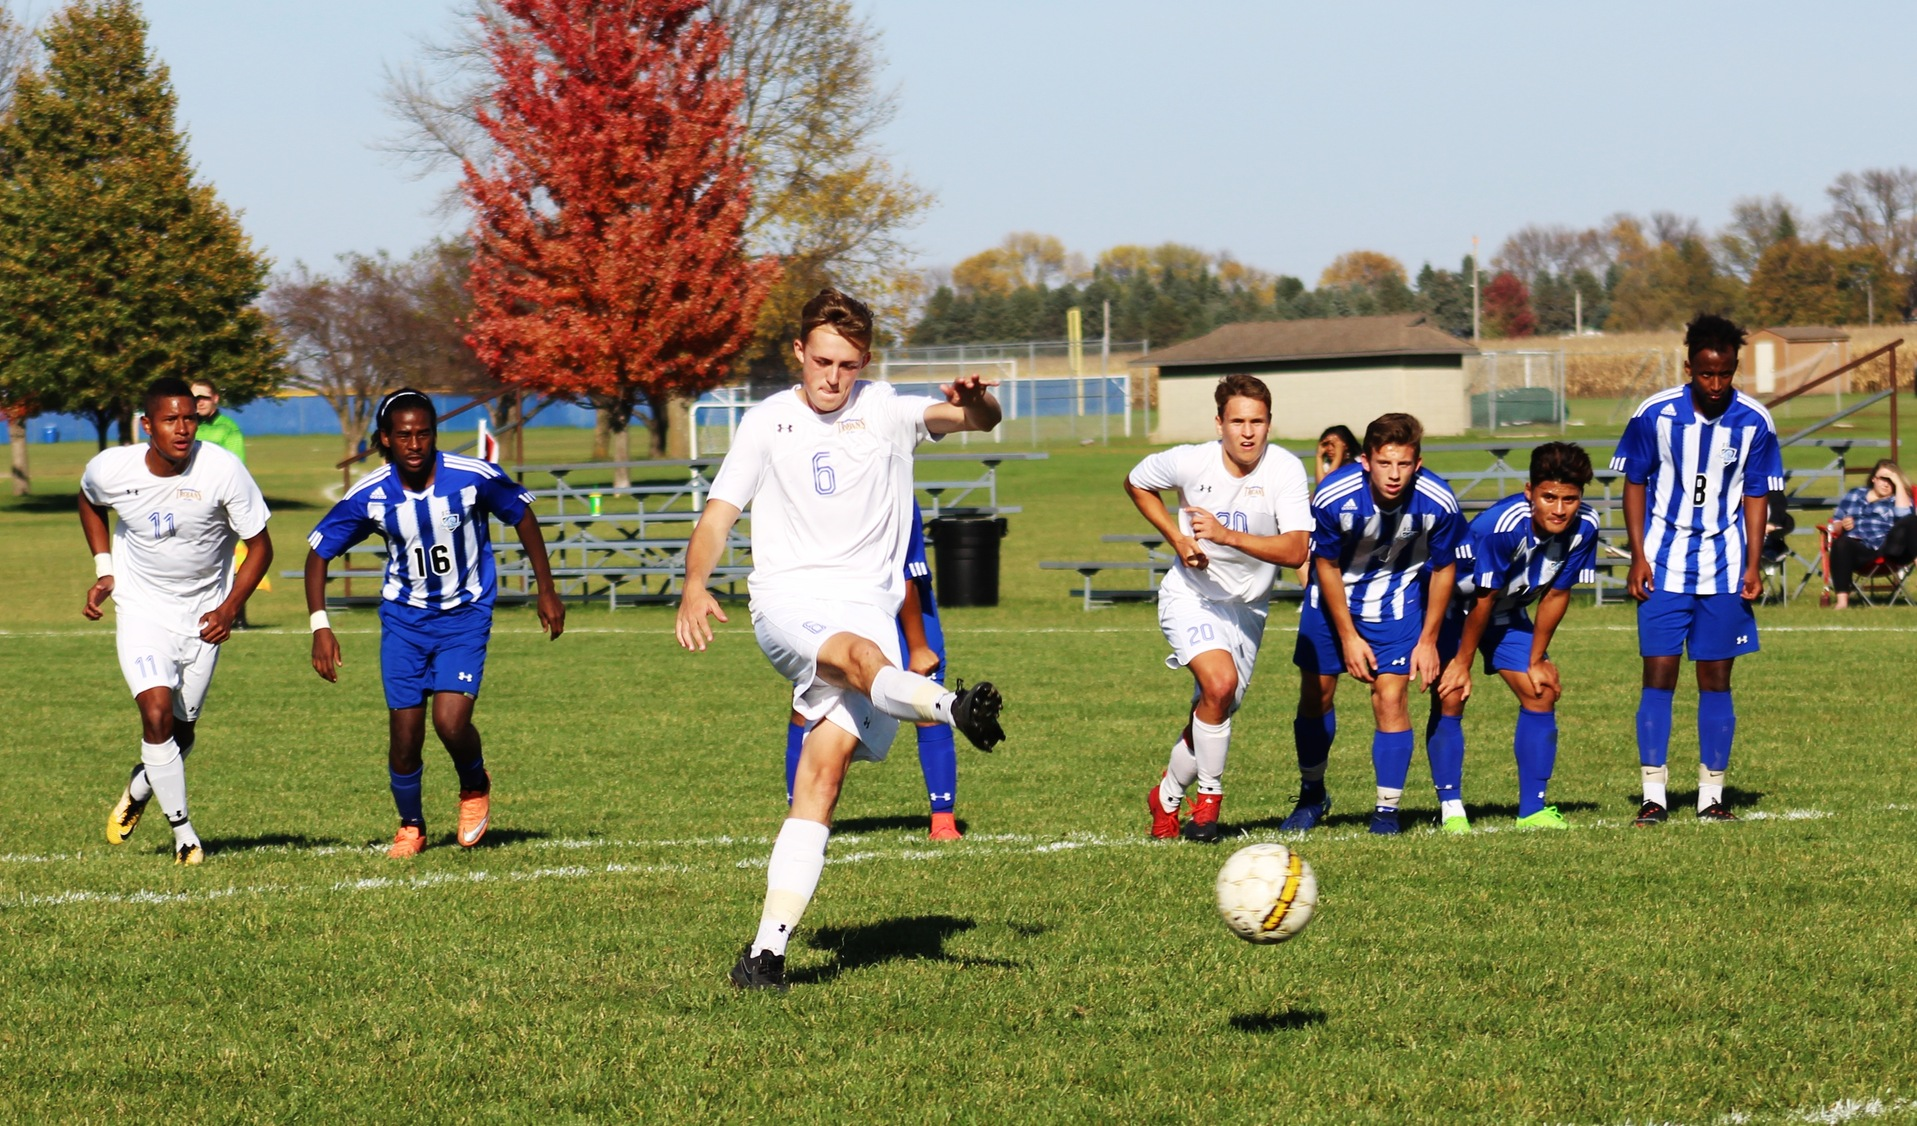 NIACC's Harry Holland scores on a penalty kick in the first half of Tuesday against DCTC.